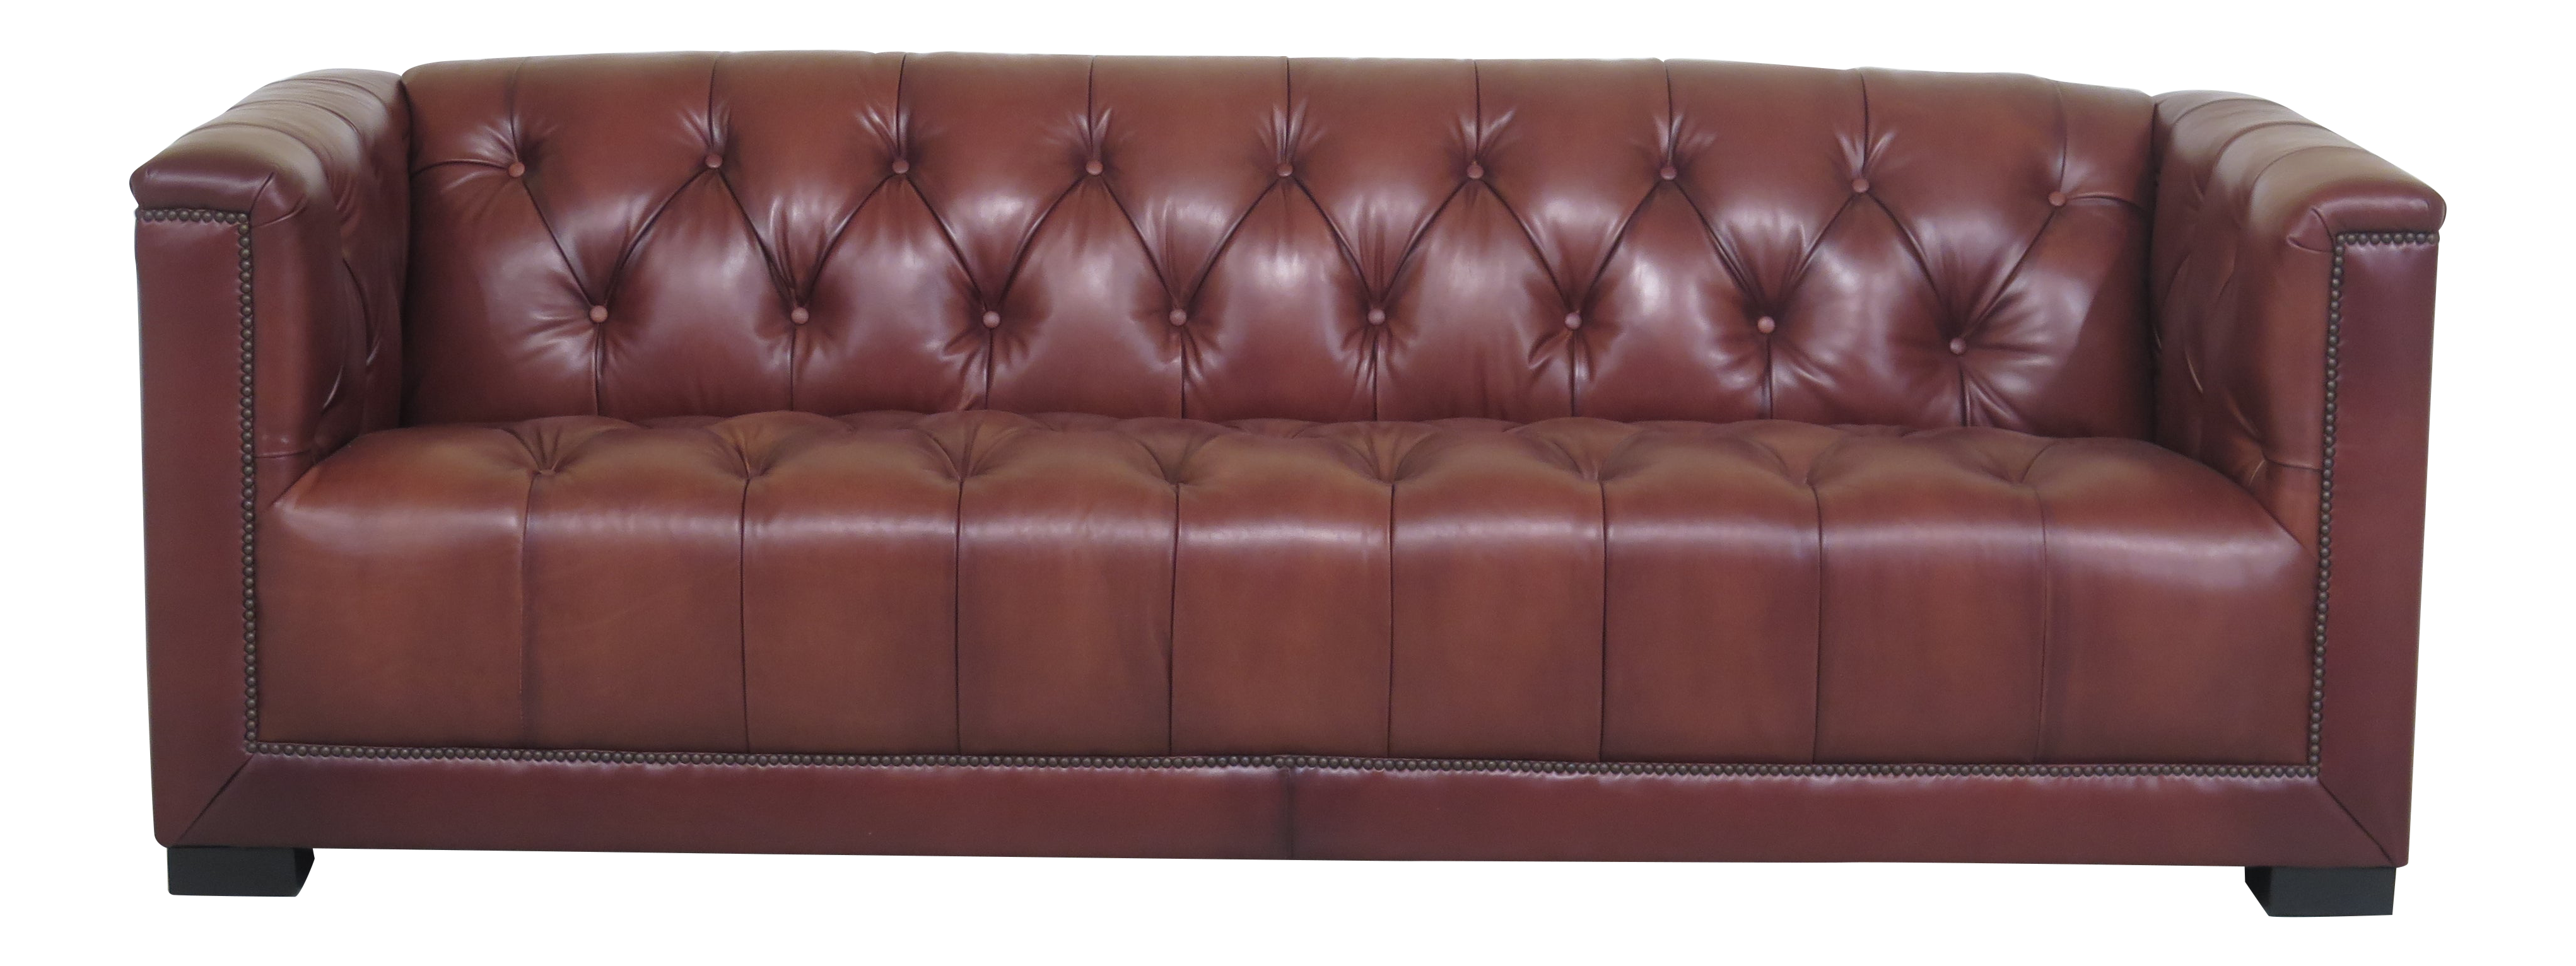 - Modern Maitland Smith 3188 Tufted Brown Leather Sofa Chairish